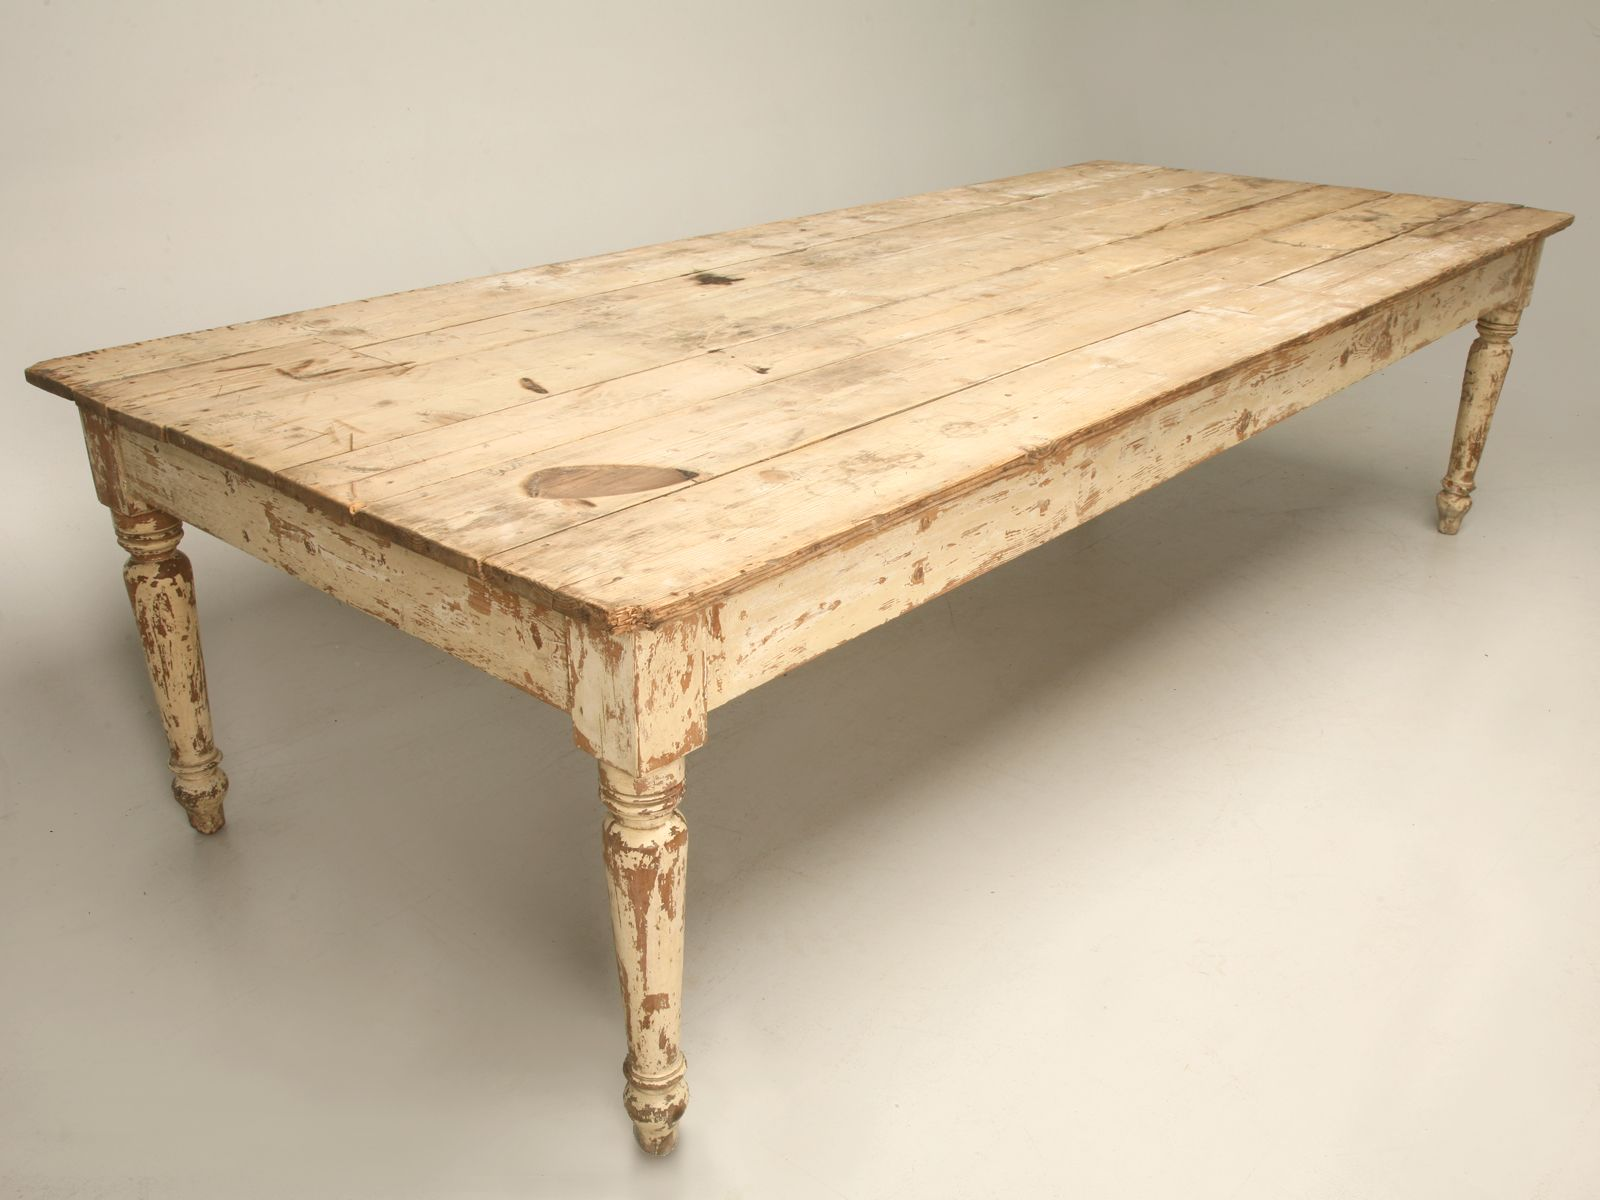 old farm table for sale antique scrubbed pine farm table i n s p i r a t i o n 7160